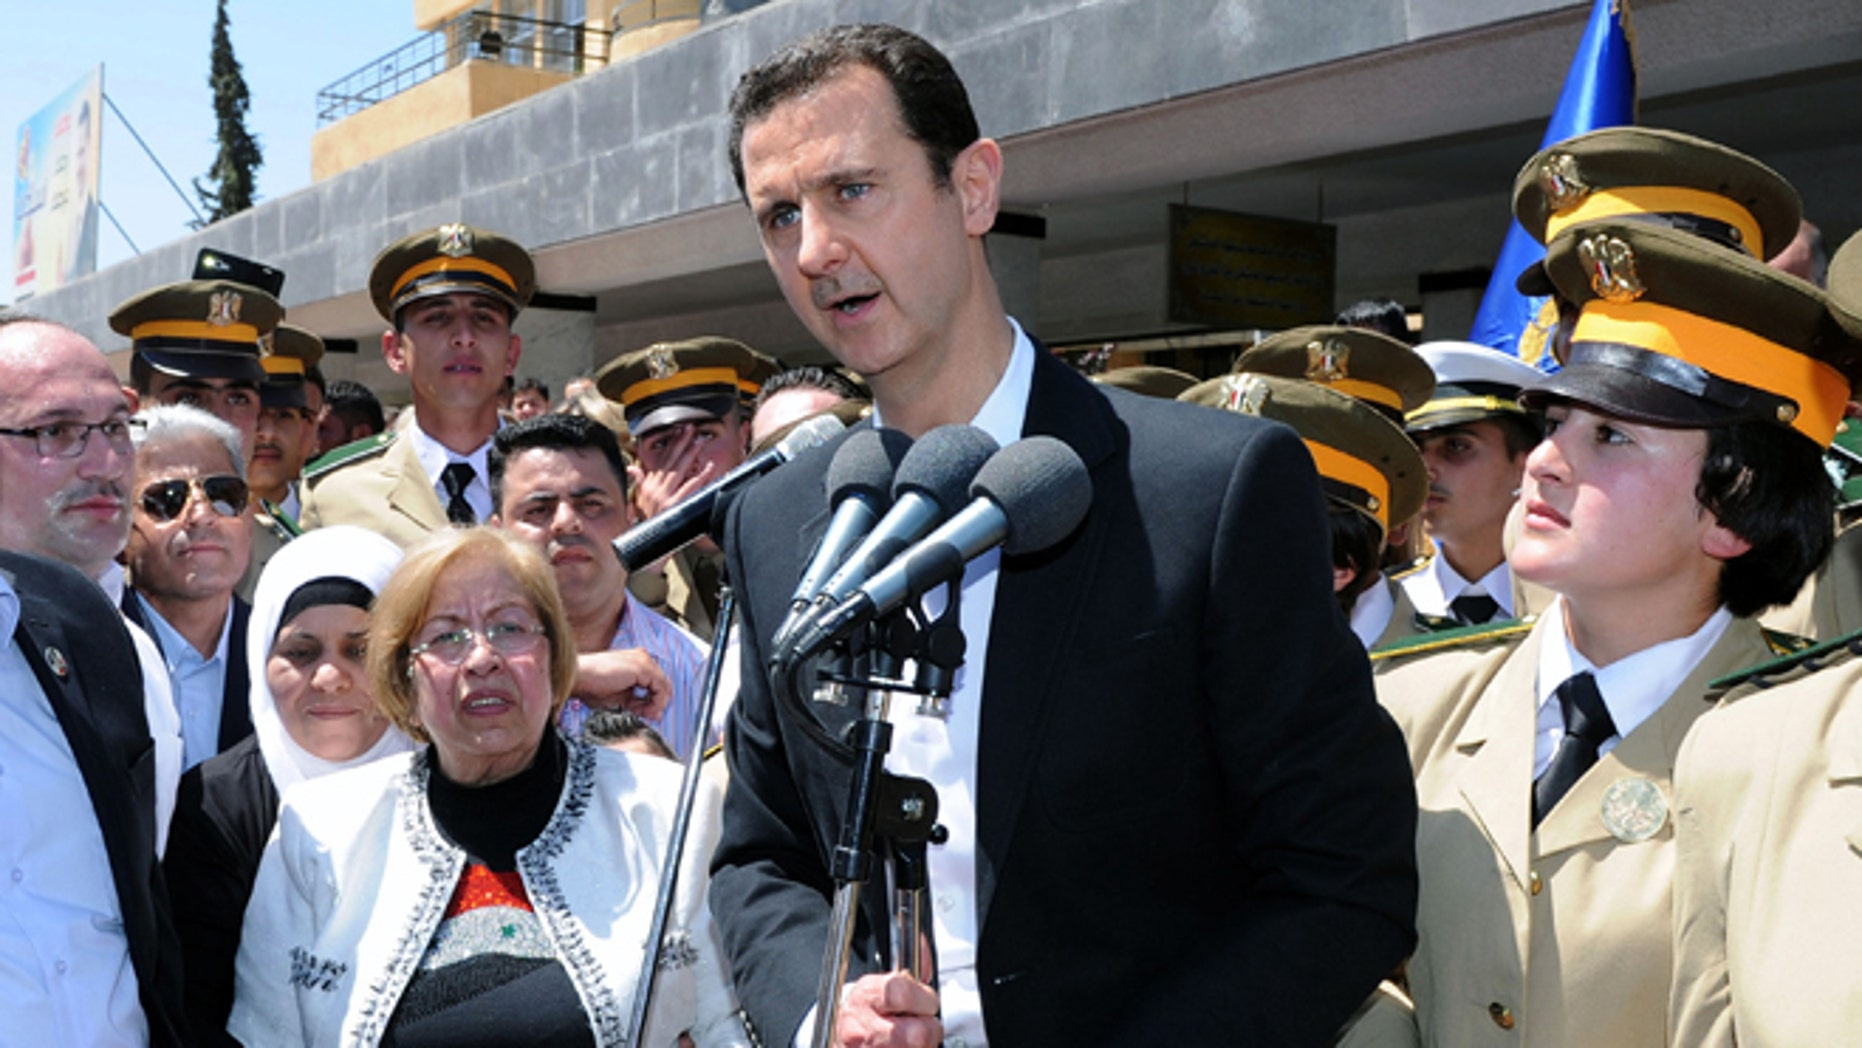 May 6, 2015: In this photo released by the Syrian official news agency SANA, Syrian President Bashar Assad speaks during a public appearance at a school in Damascus, Syria.